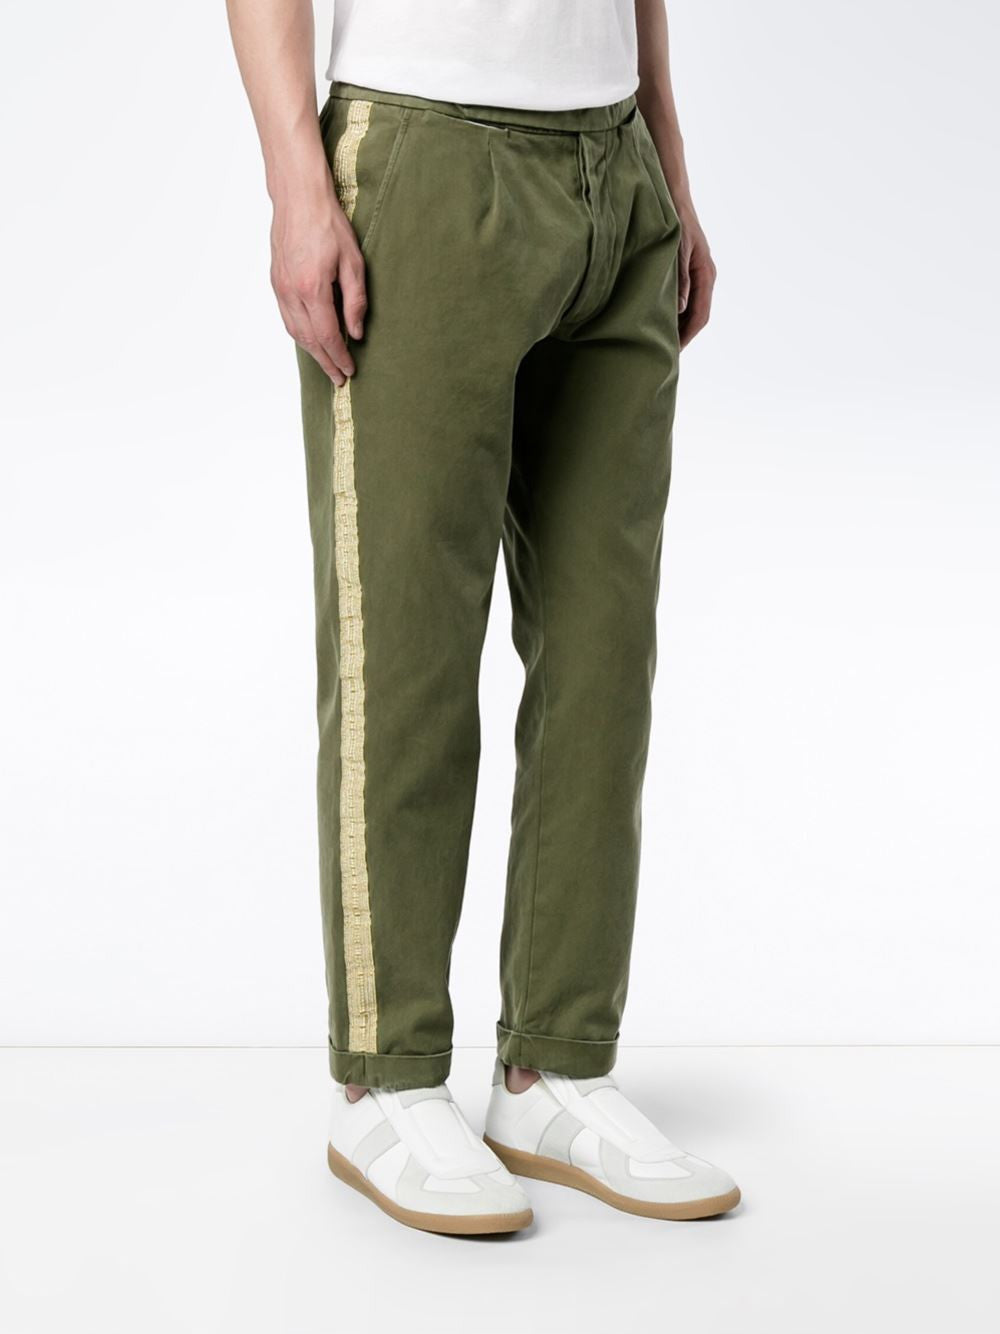 Striped Cotton Pant | PMCA003-F1601-0032